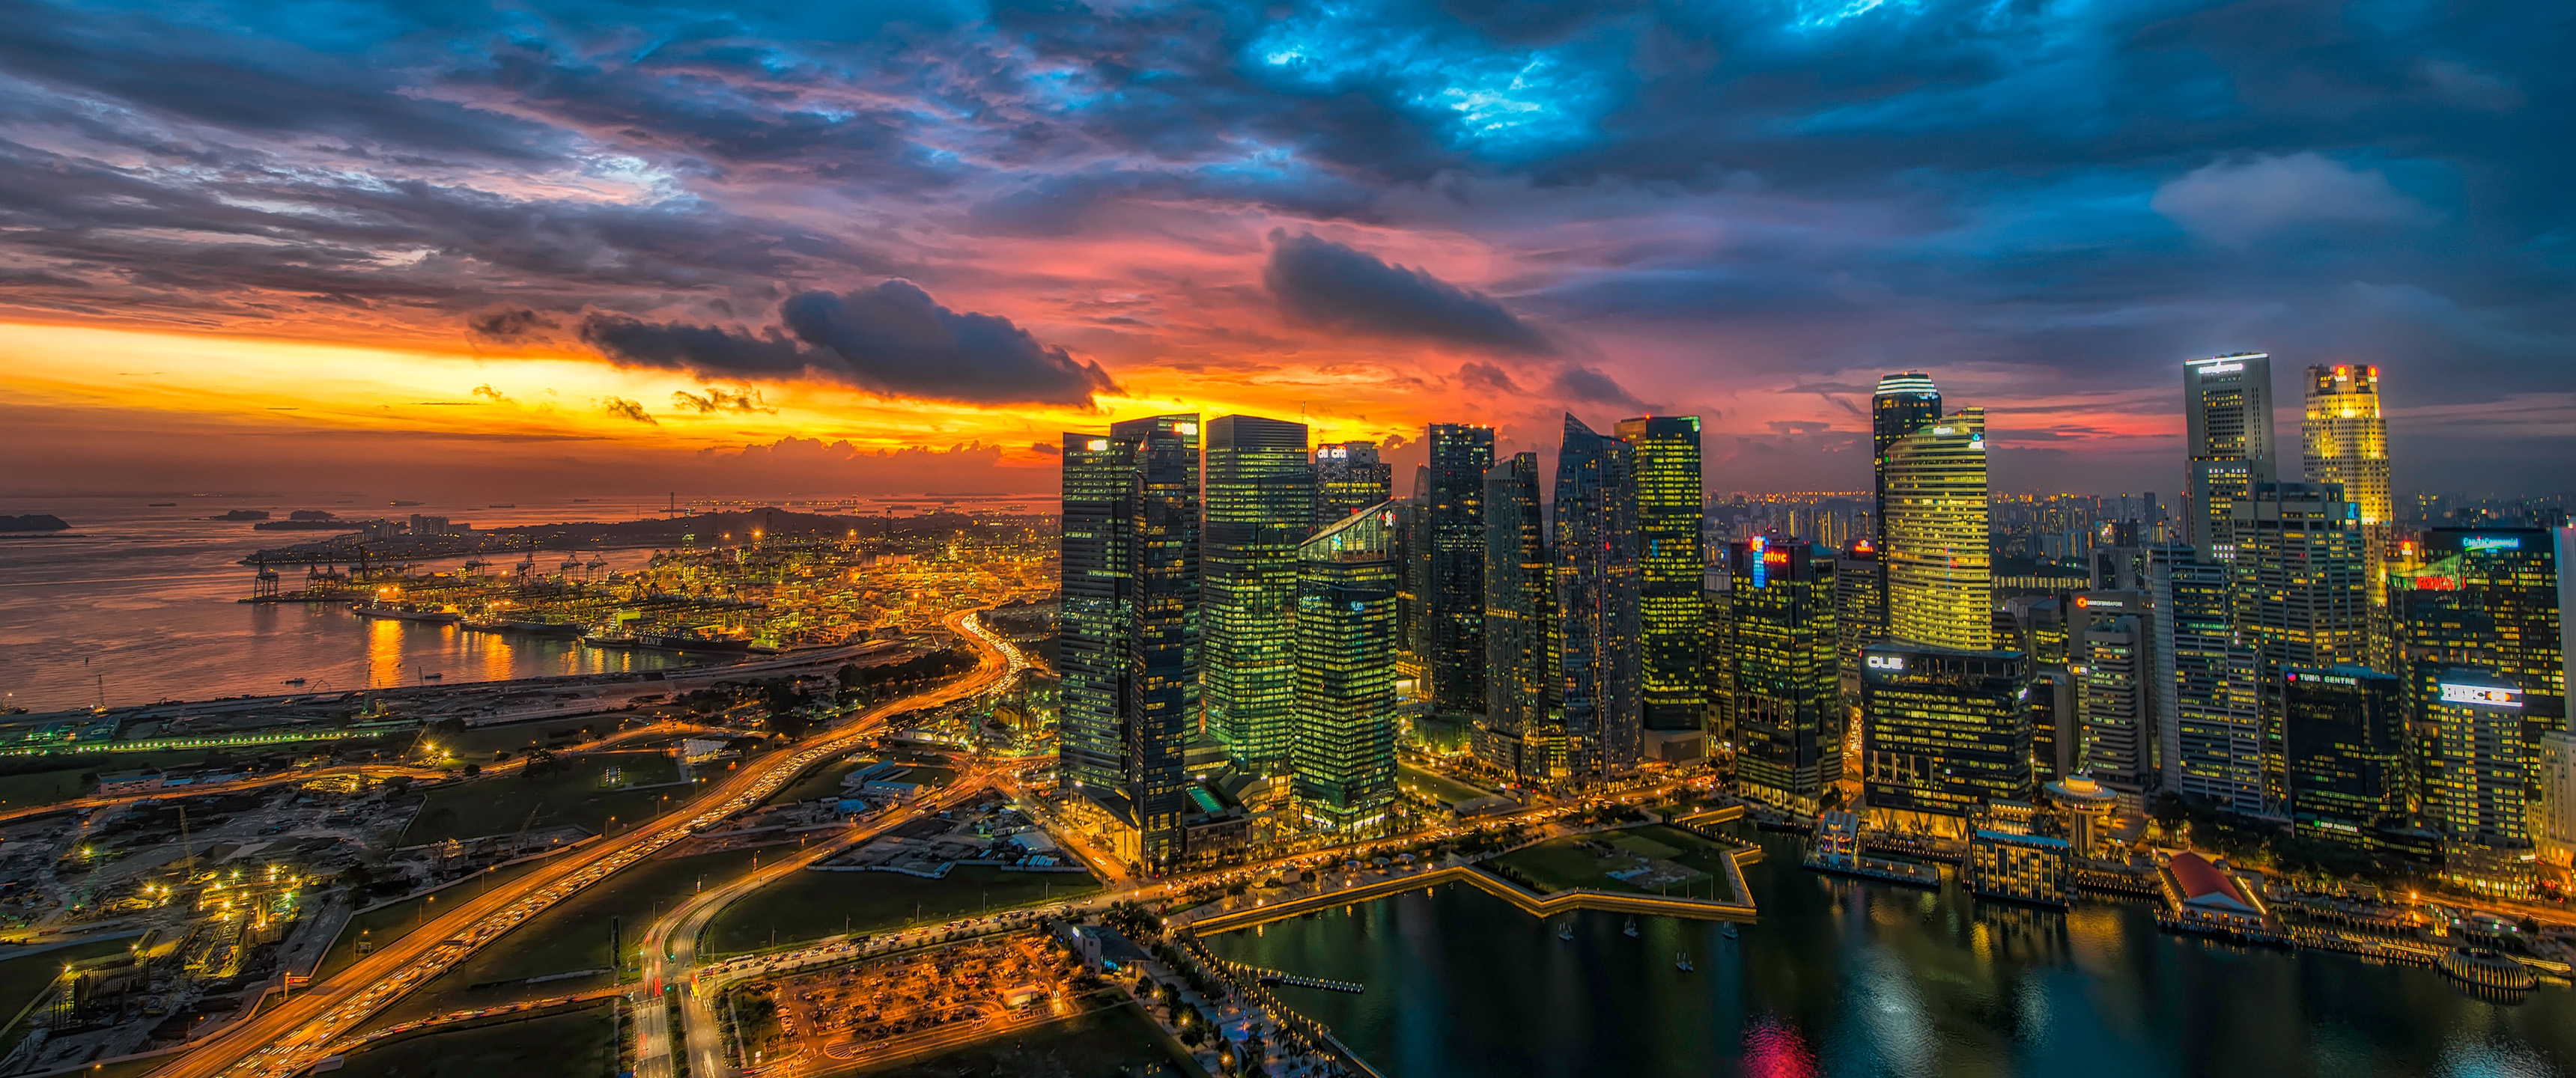 Glowing Singapore 219 Wallpaper Ultrawide Monitor 219 Wallpapers 3440x1440